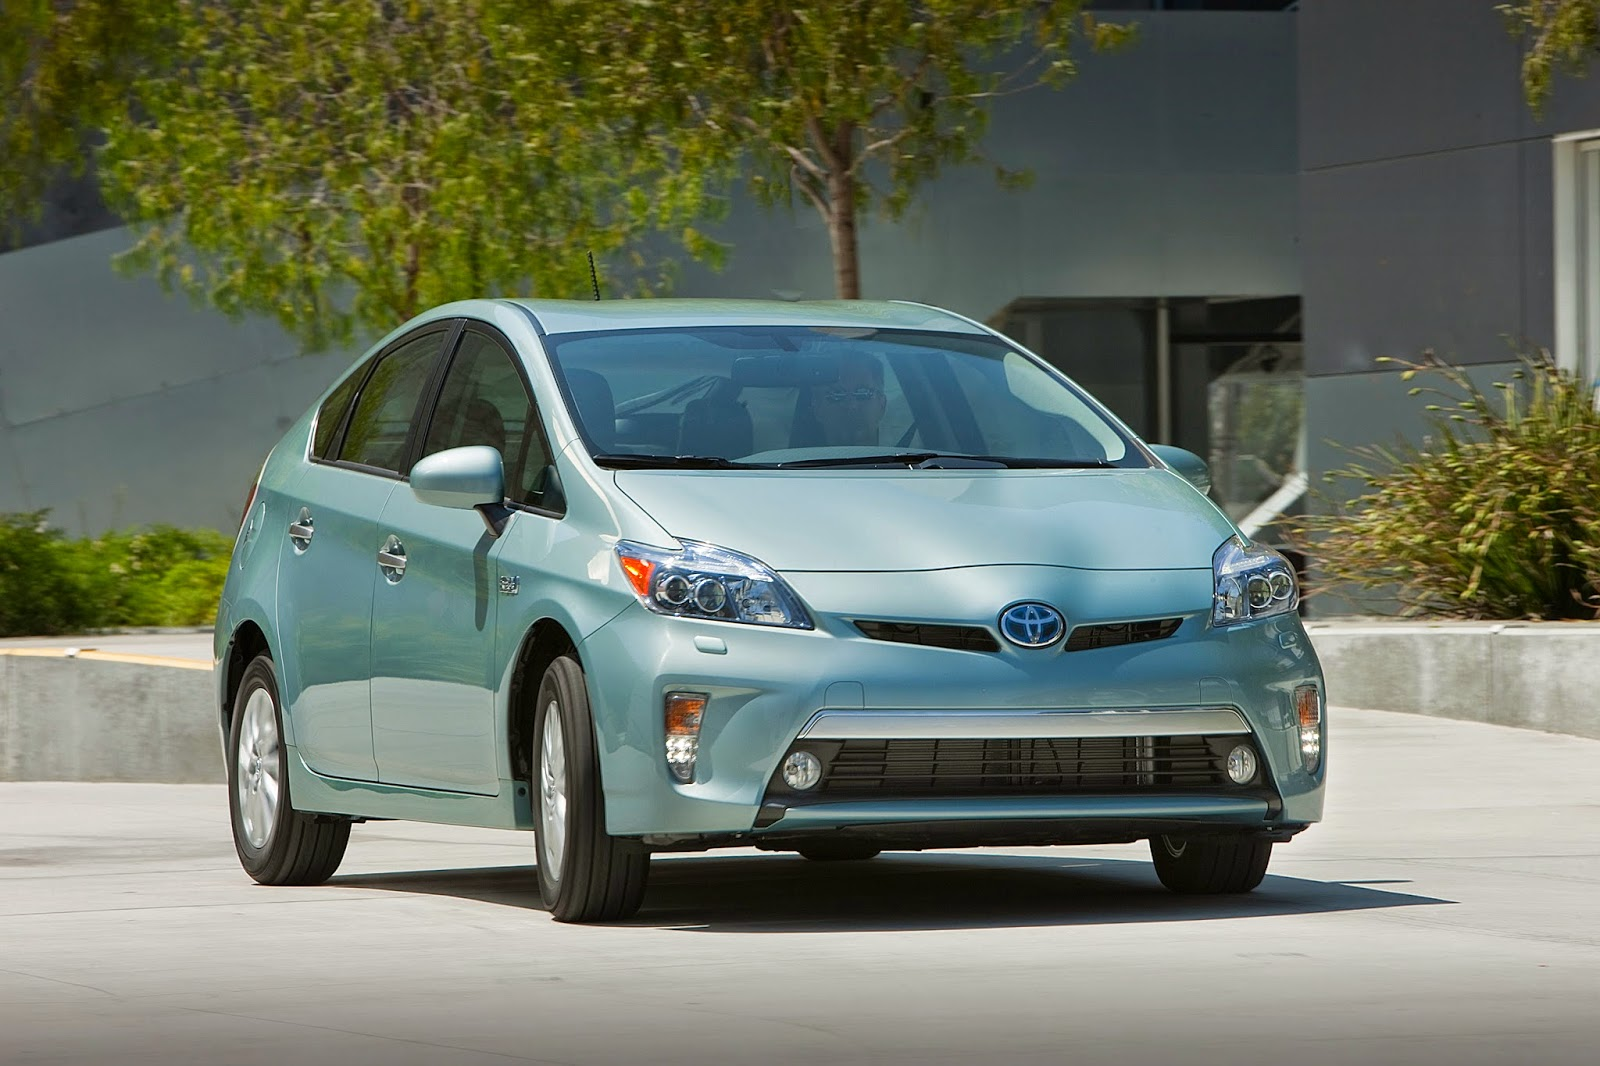 2014 Toyota Prius Plug-In front 3/4 view